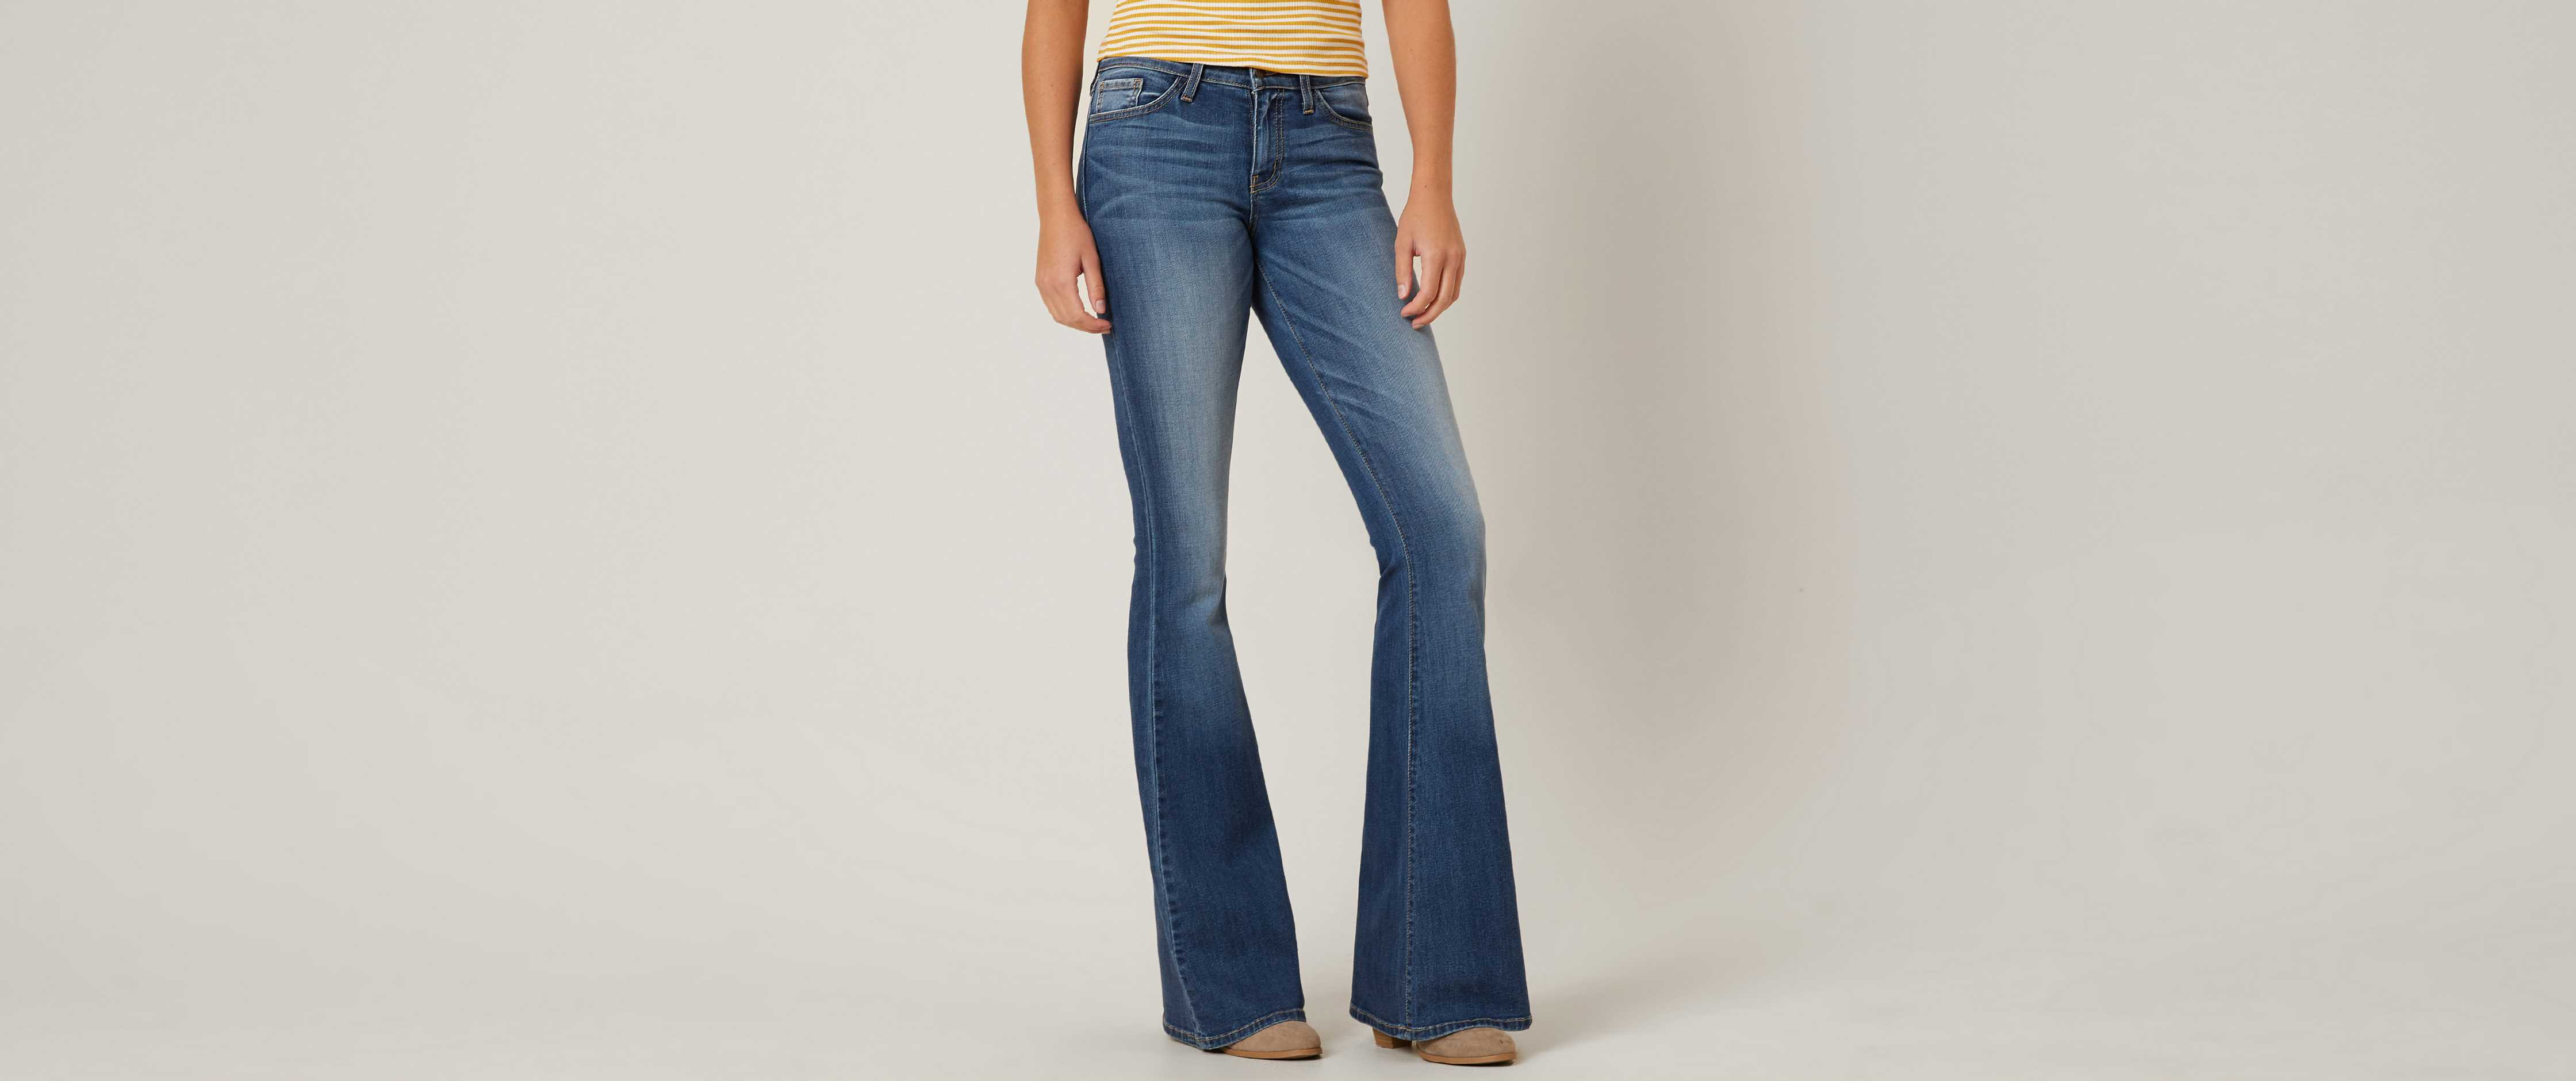 flare jeans flying monkey mid-rise flare stretch jean TVXRYPQ